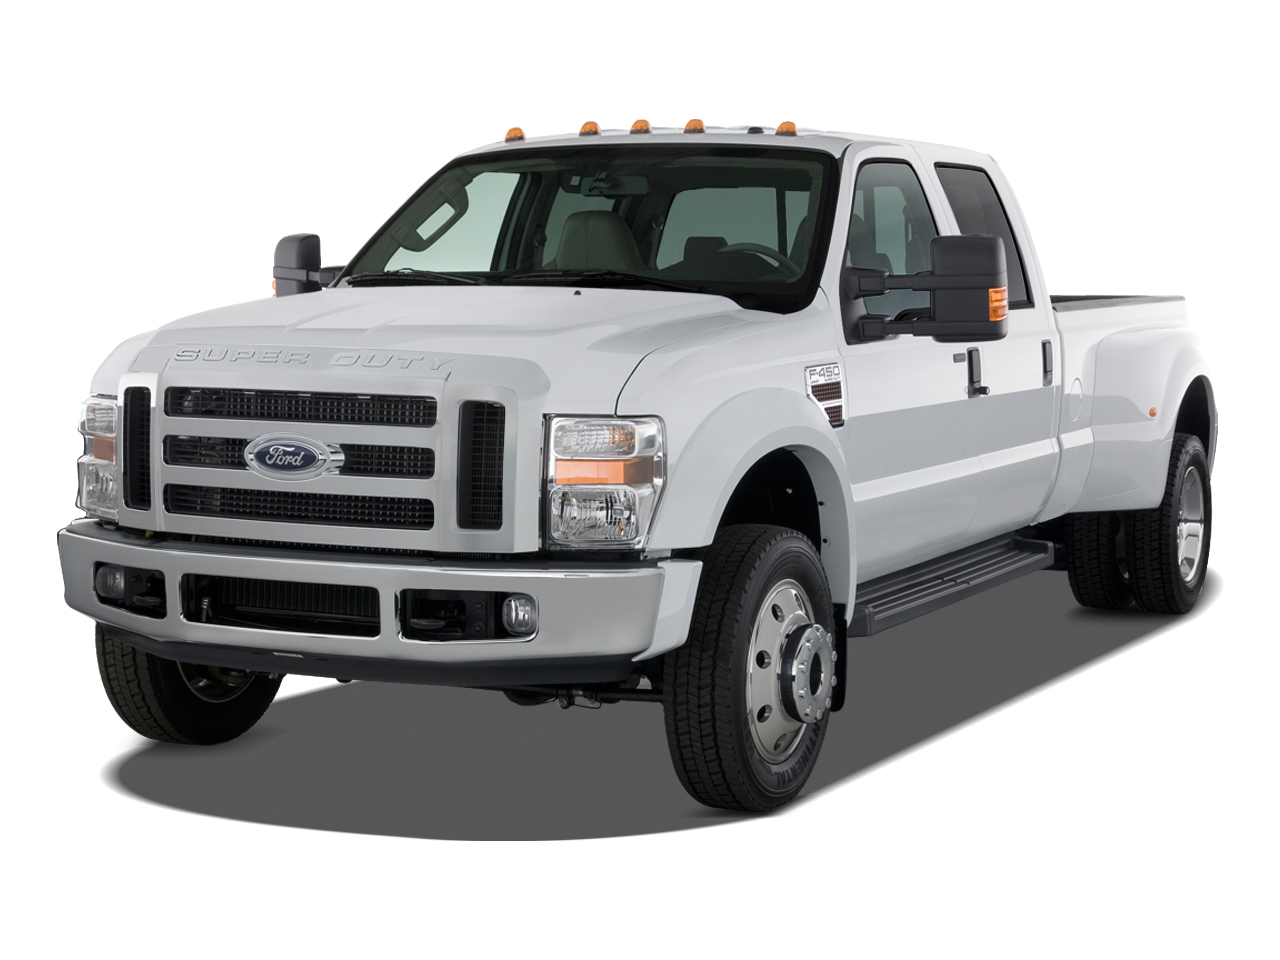 Ford truck photo - 1